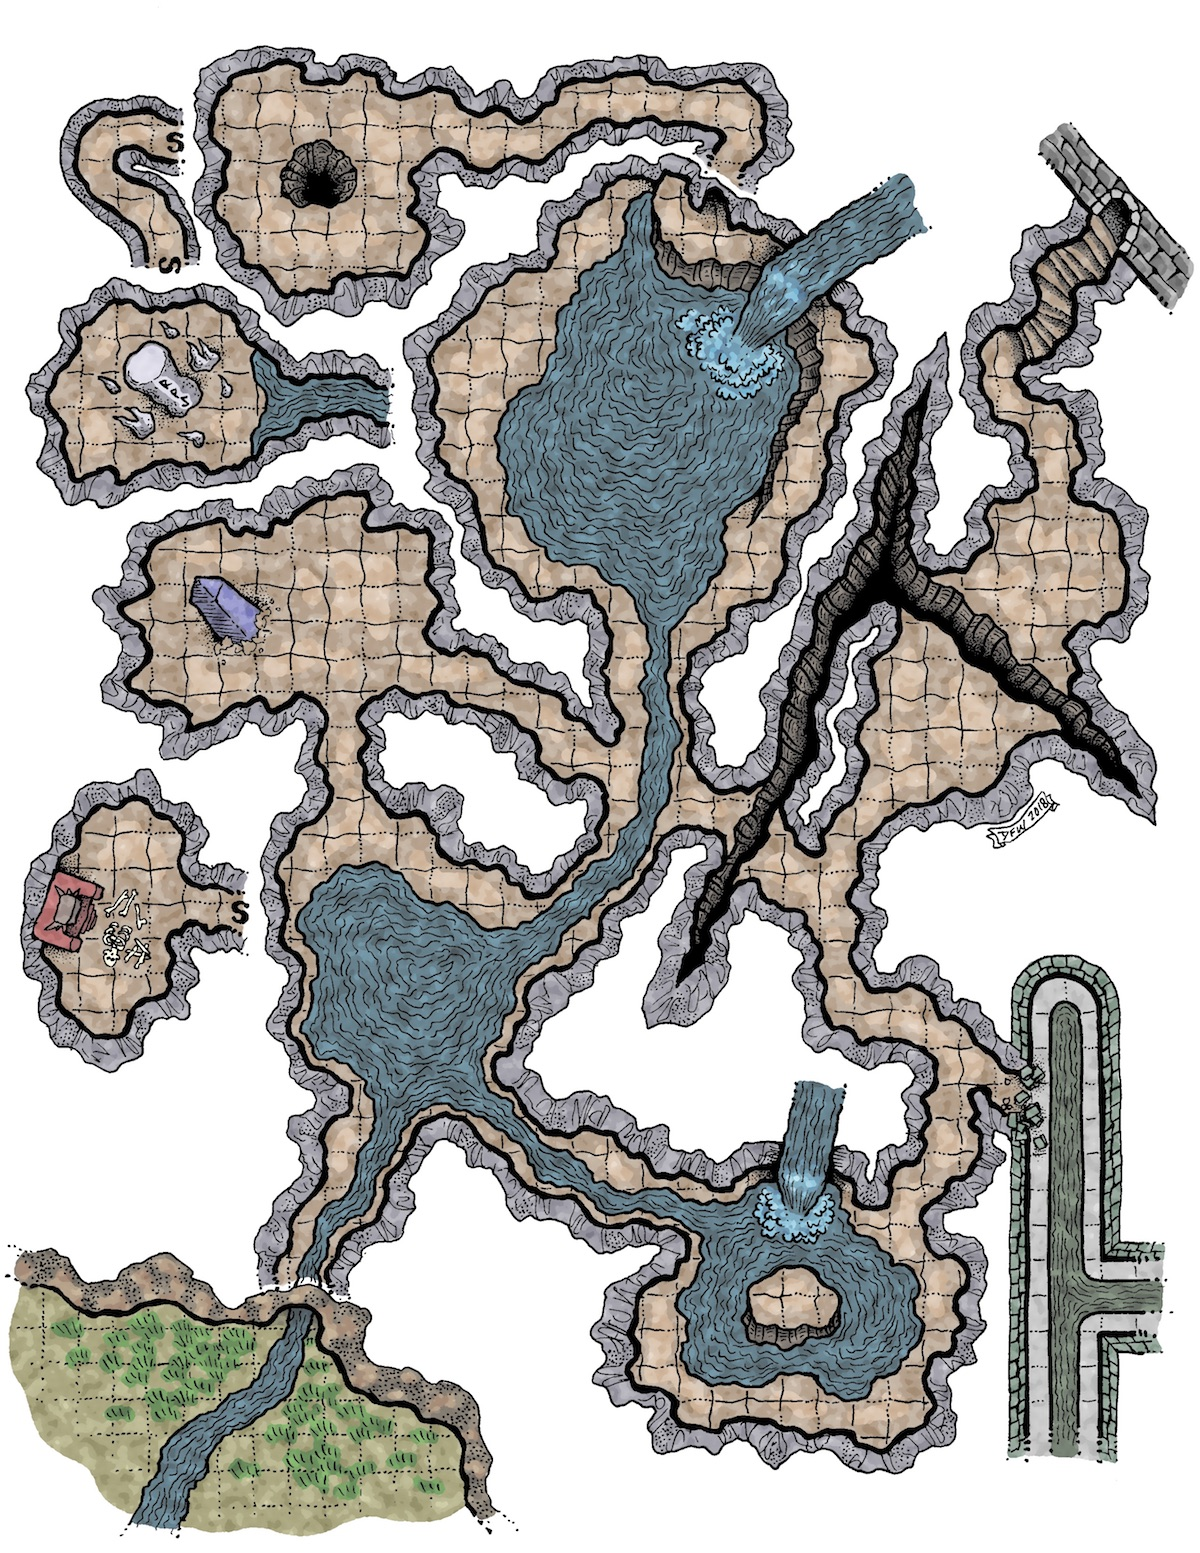 mining maps, battle maps, two worlds ii maps, dnd maps, keep maps, gaming maps, sword maps, star trek maps, the rise of runelords maps, dungeons dragons, orontius finaeus maps, wilderness map, rpg maps, food maps, special maps, city maps, world maps, iron curtain borders maps, detente maps, pathfinder d maps, star wars role-playing maps, dragon maps, baldur's gate maps, town maps, d&d maps, classic maps, on dungeon map